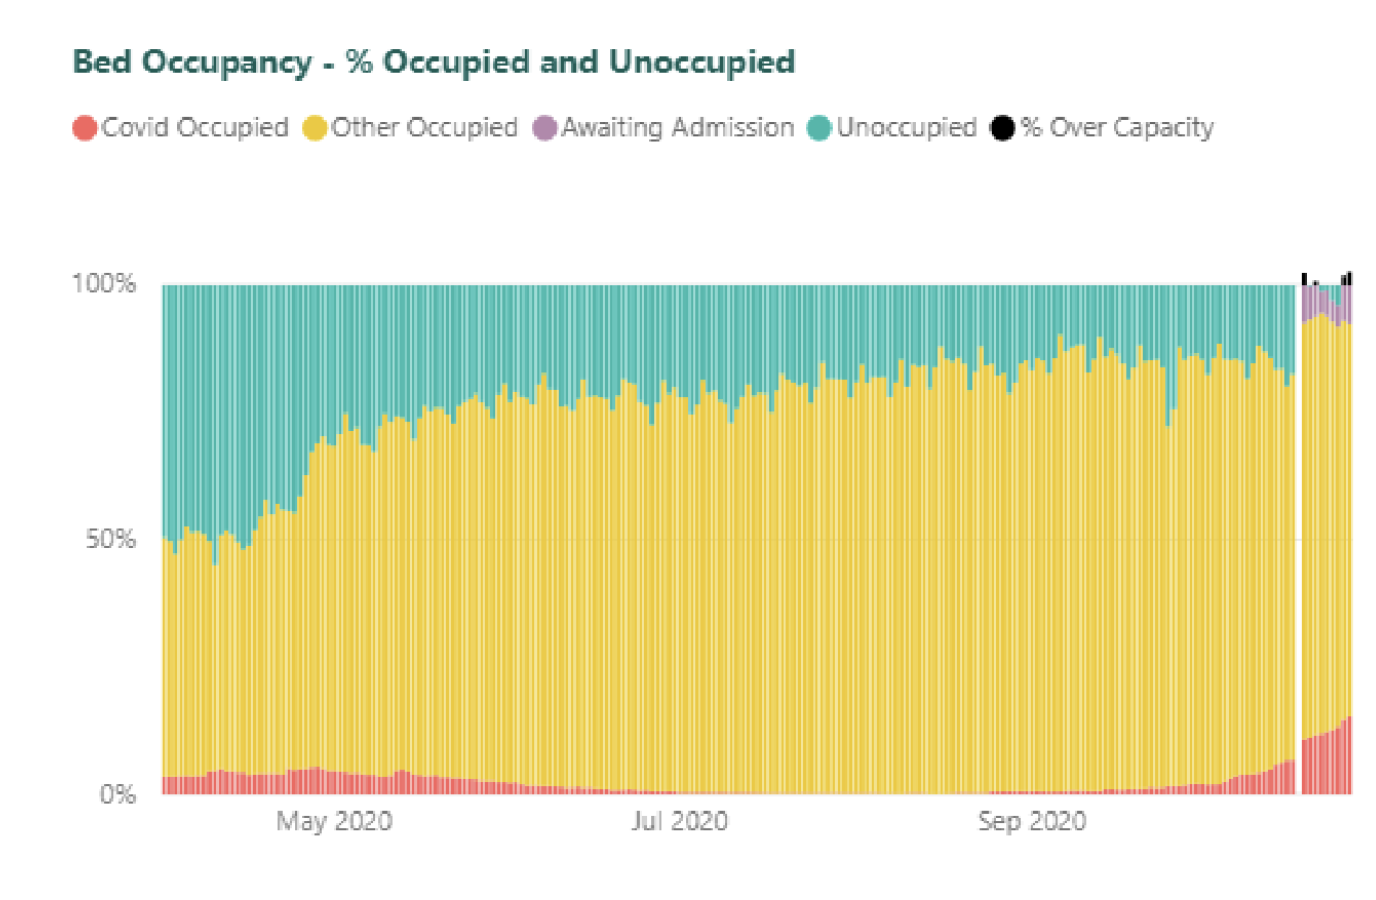 Bed Occupancy - % Occupied and Unoccupied